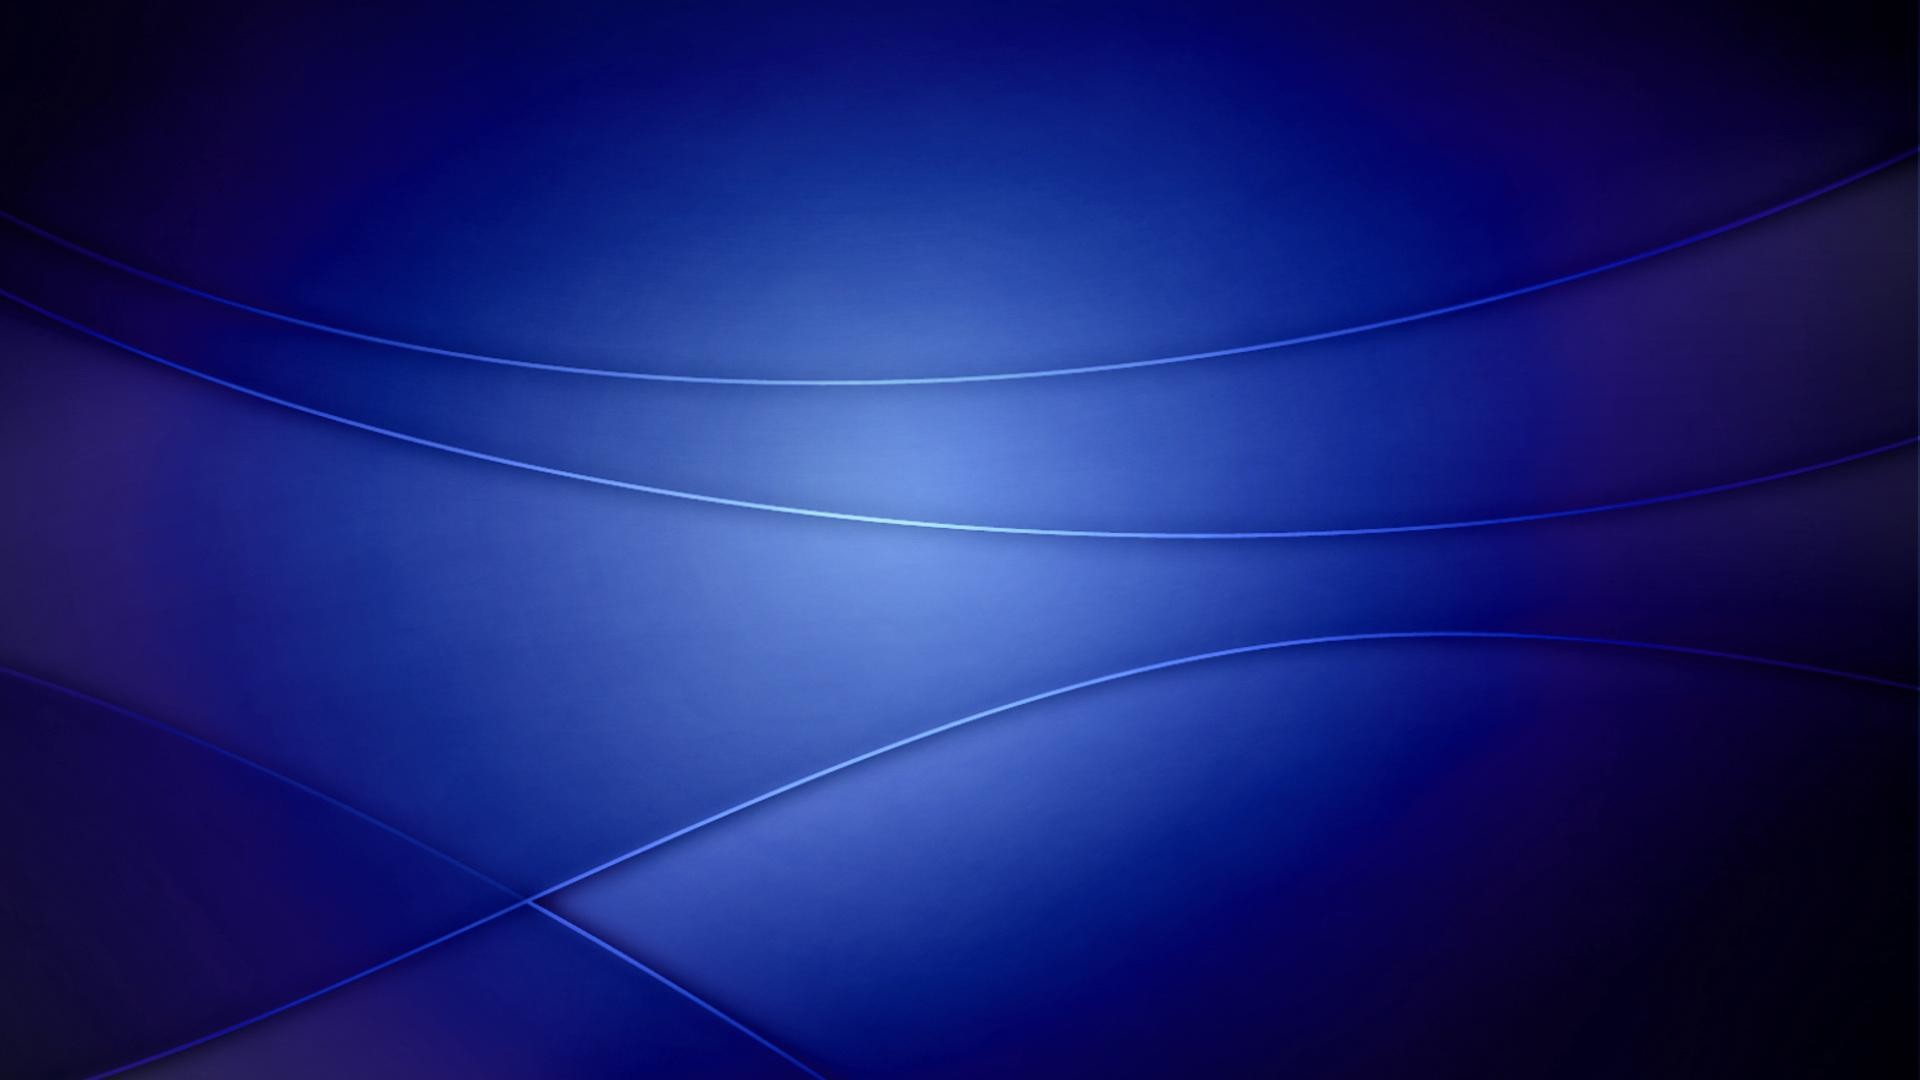 1920x1080 Deep Blue Background wallpaper 856344